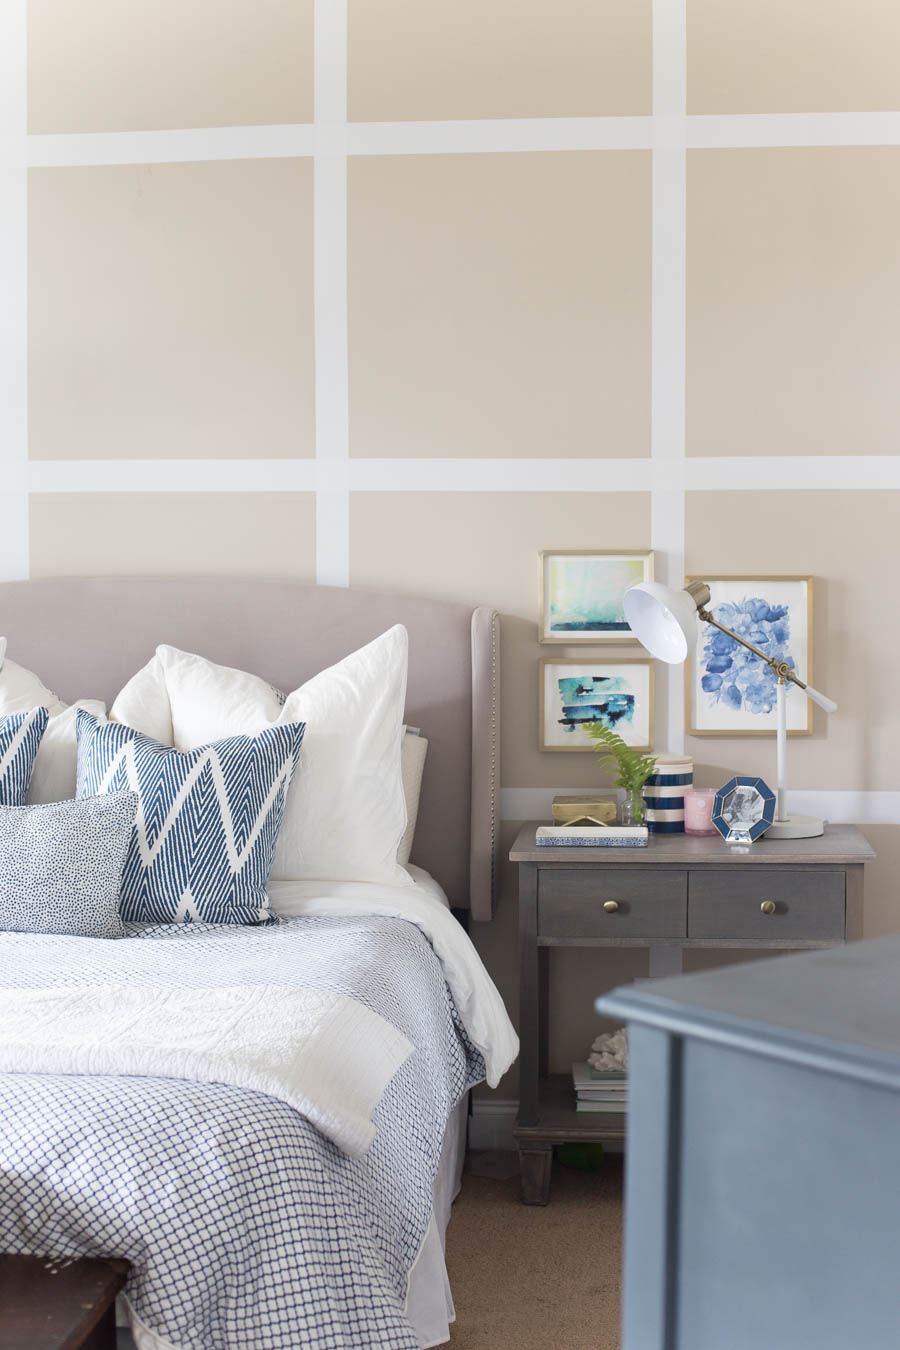 Room For Rent Design: How To Decorate A Rental Like